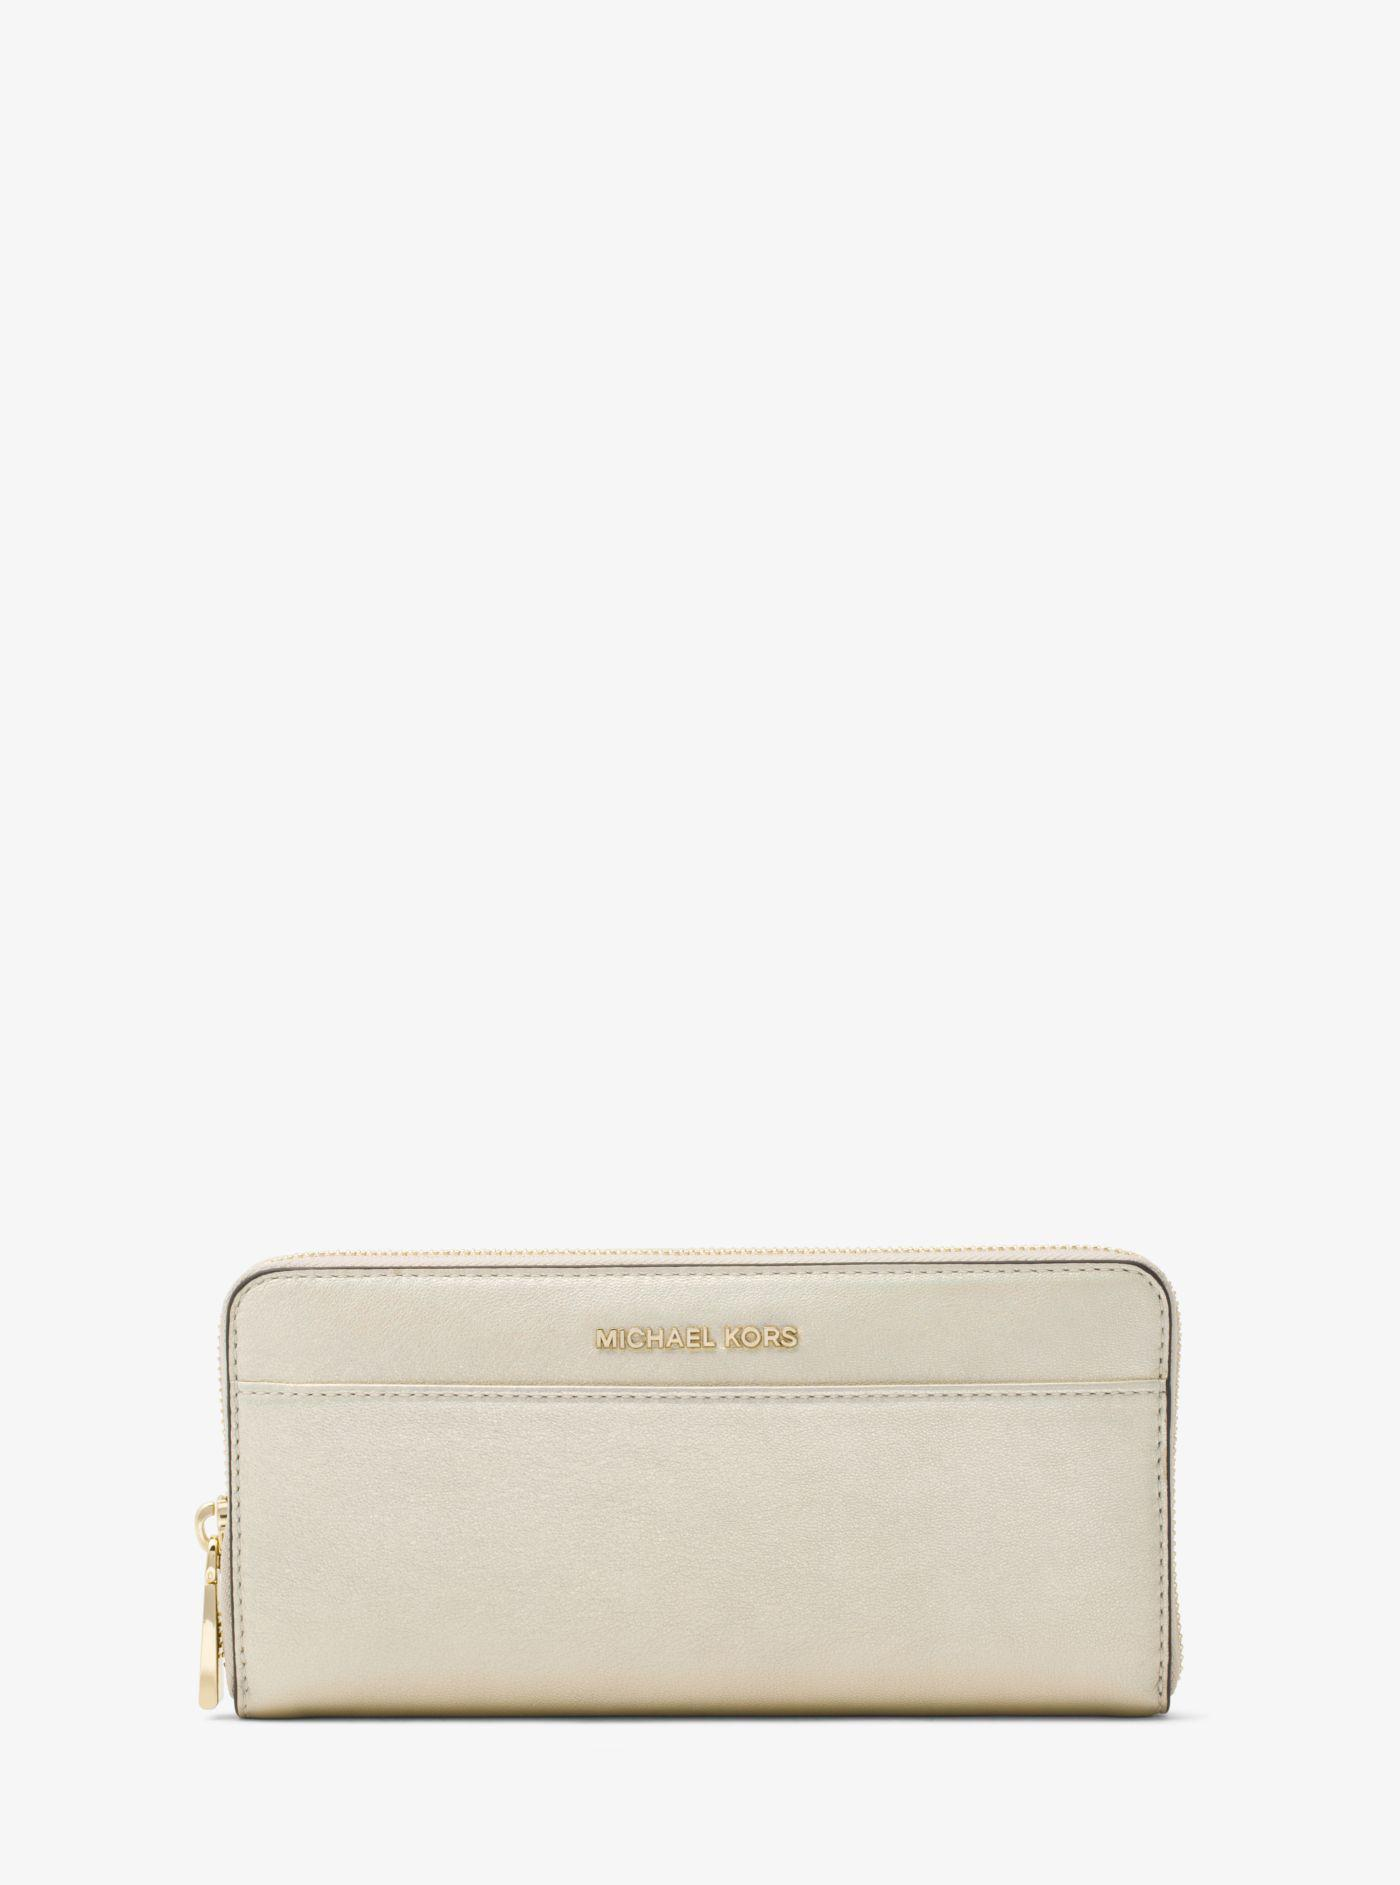 e754d73a5636 Michael Kors Jet Set Iridescent Leather Continental Wallet in ...